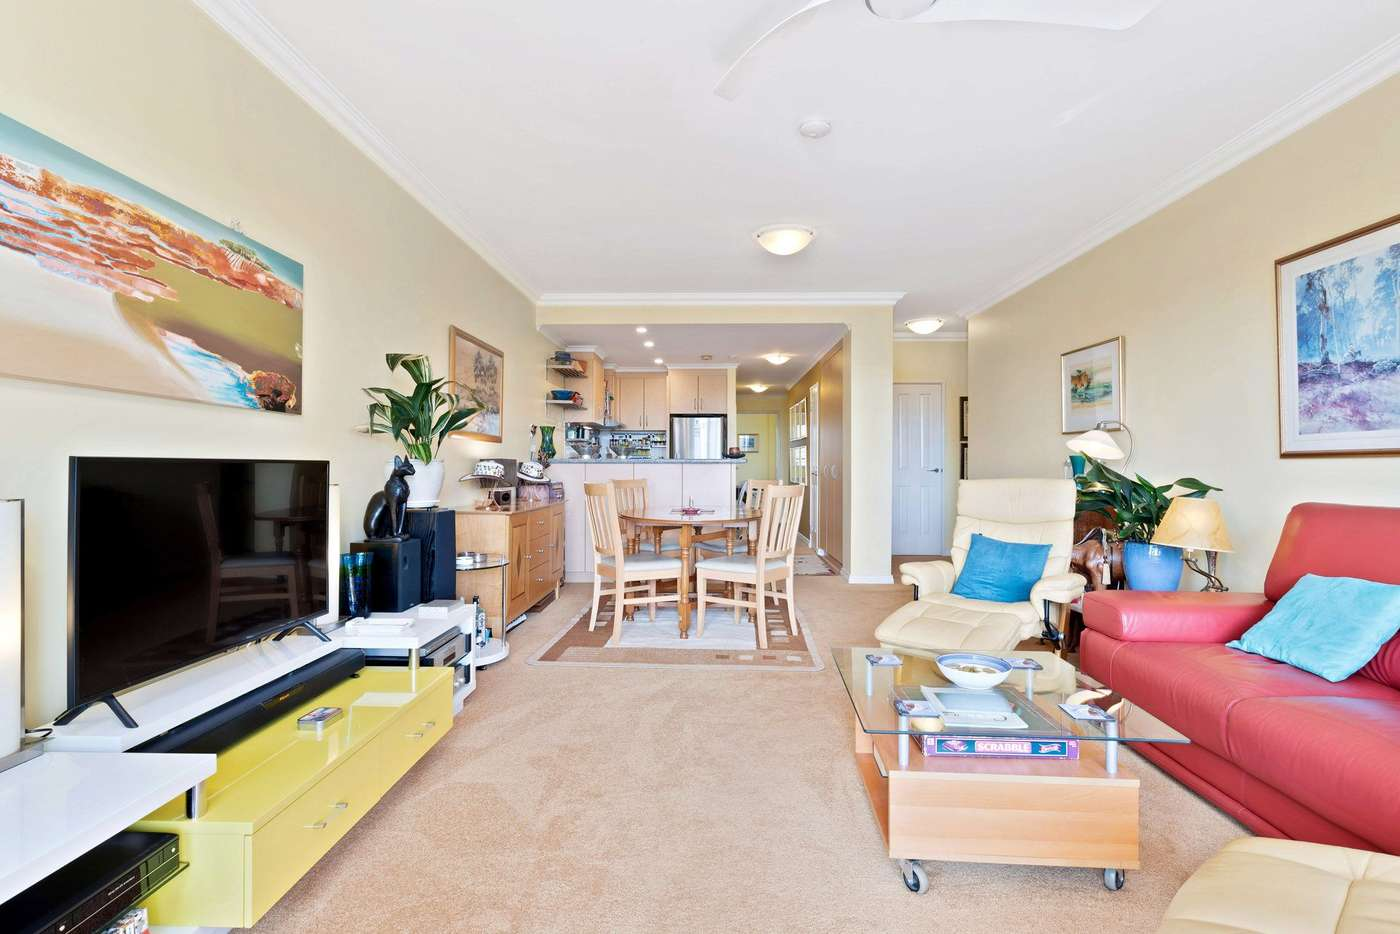 Main view of Homely apartment listing, 17/105 Colin Street, West Perth WA 6005